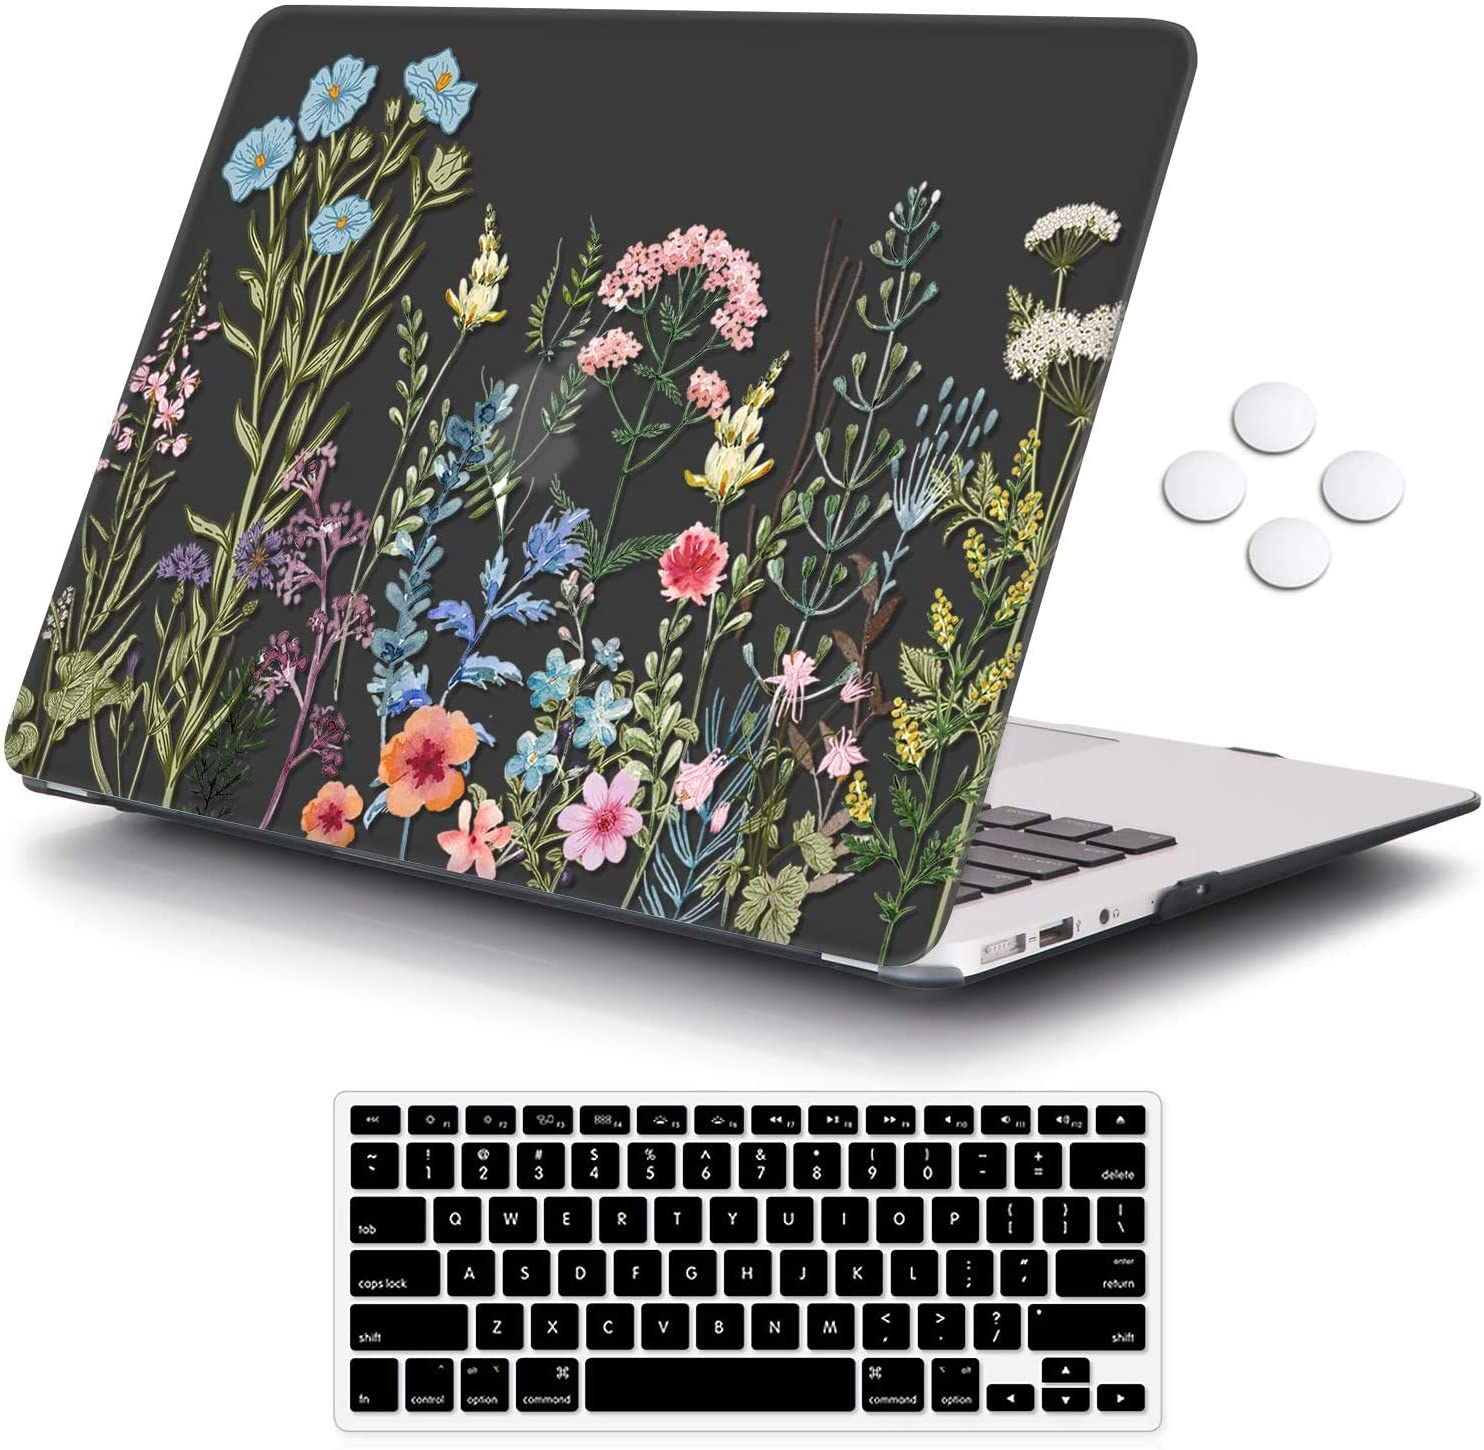 iCasso MacBook Air 11 inch Case Model A1370/A1465, Ultra Slim Pattern Plastic Hard Shell Case Protective Cover Compatible MacBook Air 11'' with Keyboard Cover - Weeds